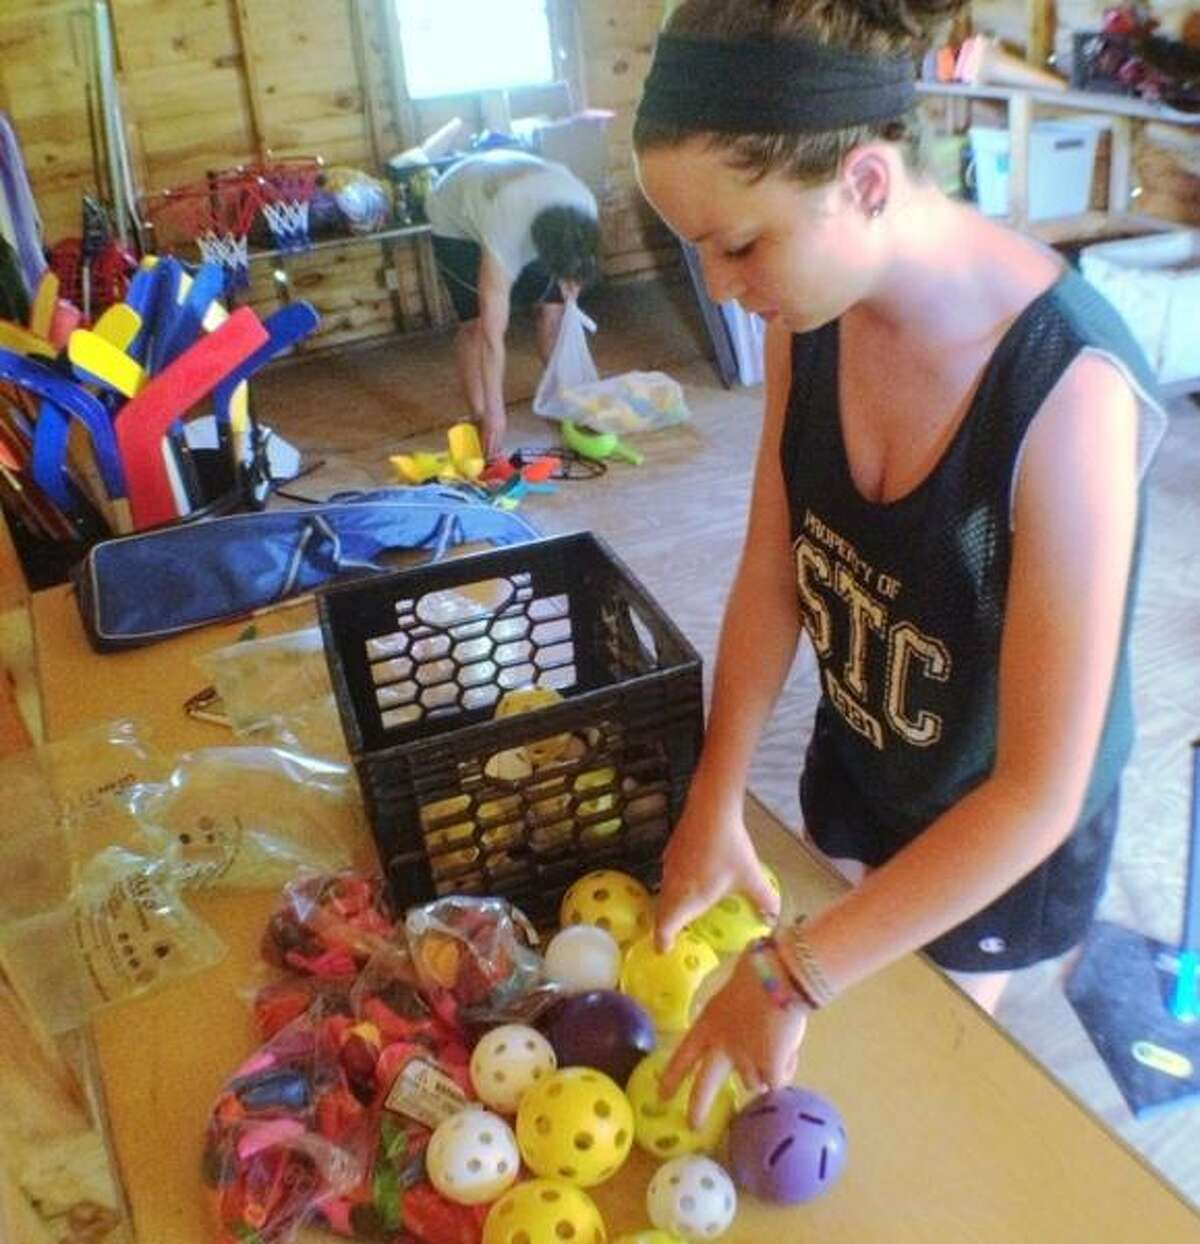 JOHN HAEGER @ONEIDAPHOTO ON TWITTER/ONEIDA DAILY DISPATCH Kelli Vachon works to inventory sports equipment at Madison County Childrens Camp Camp Lookout on Monday, June 24, 2013.